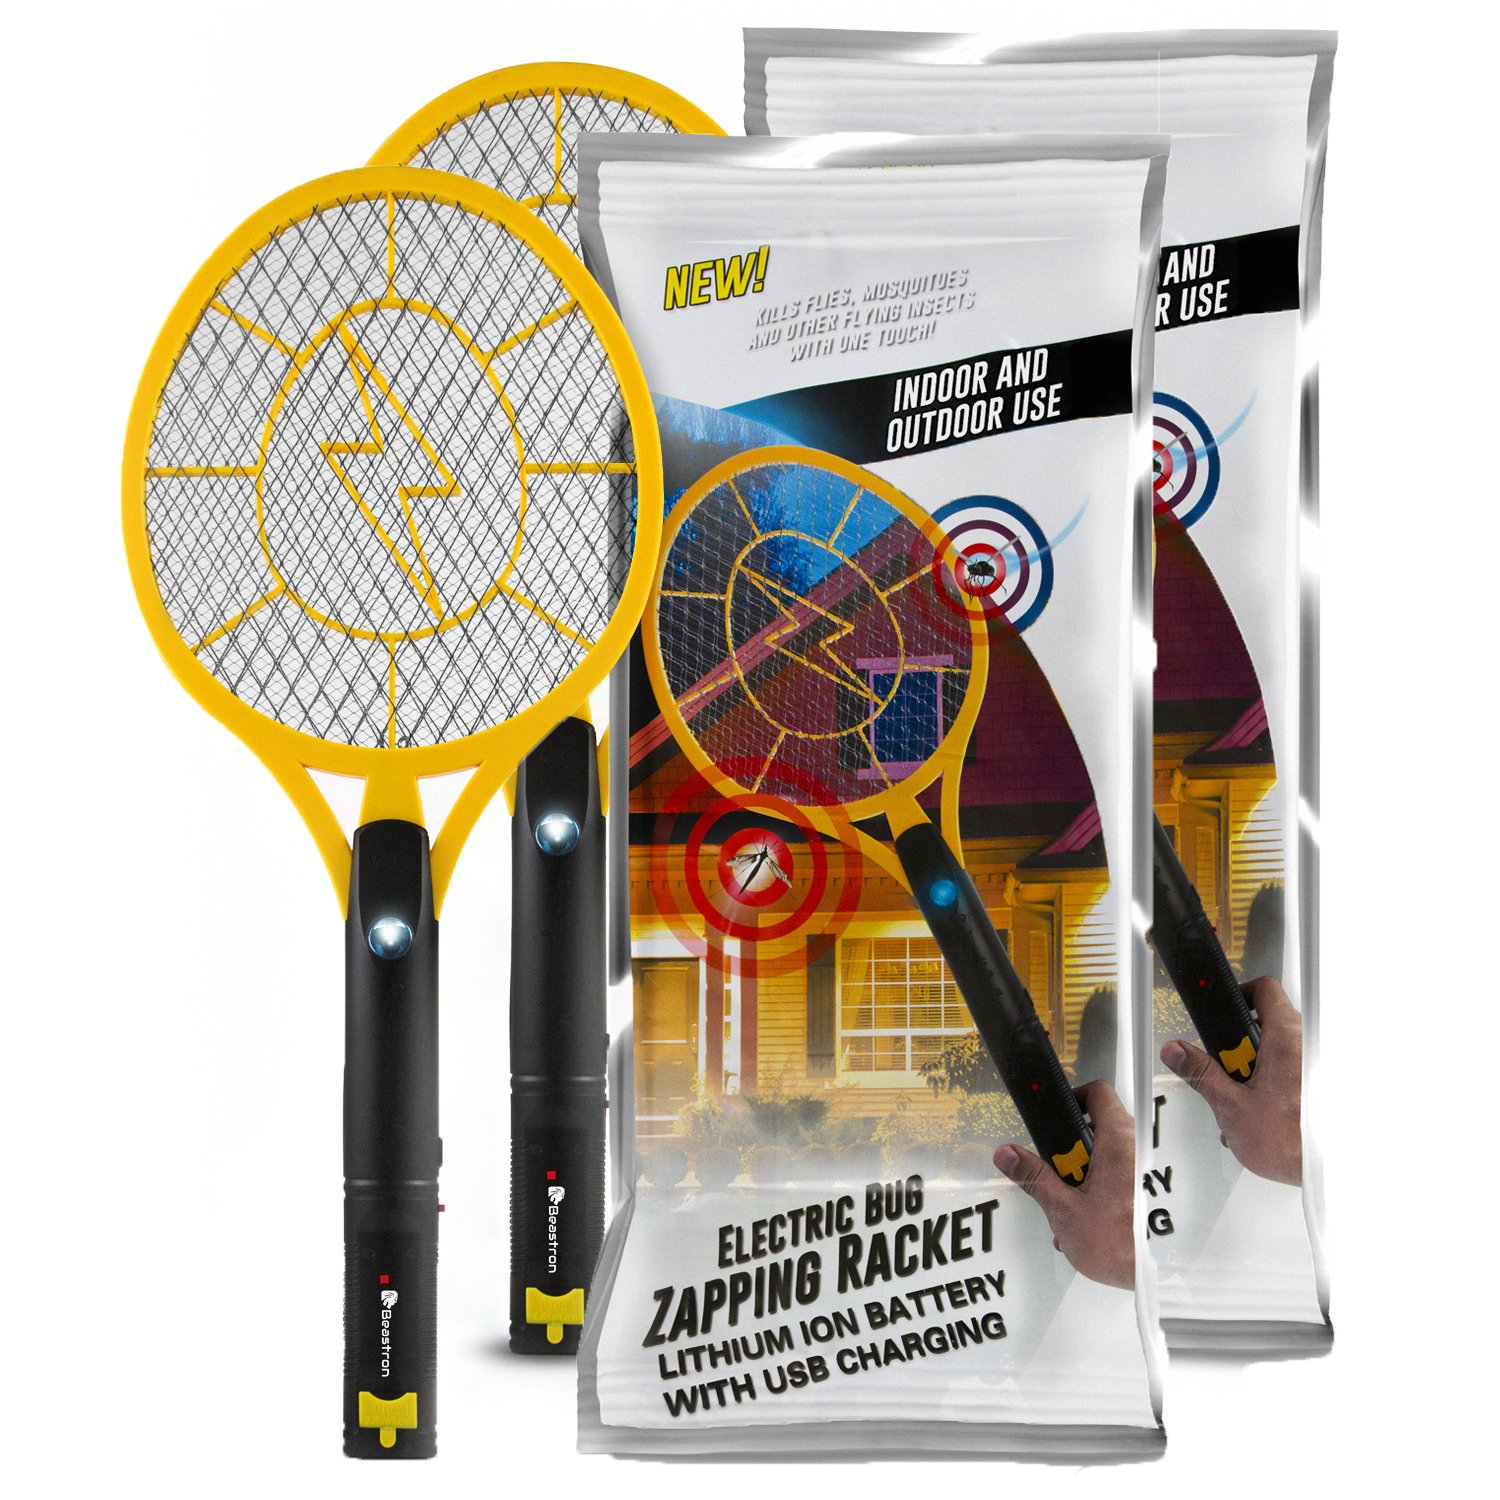 Beastron Bug Zapper Rechargeable Mosquito, Fly Killer and Bug Zapper Racket, 3000 Volt Usb Charging, Super-Bright Led Light to Zap in the Dark Unique 3 Layer Safety Mesh that's Safe to Touch-2 Pack by Beastron